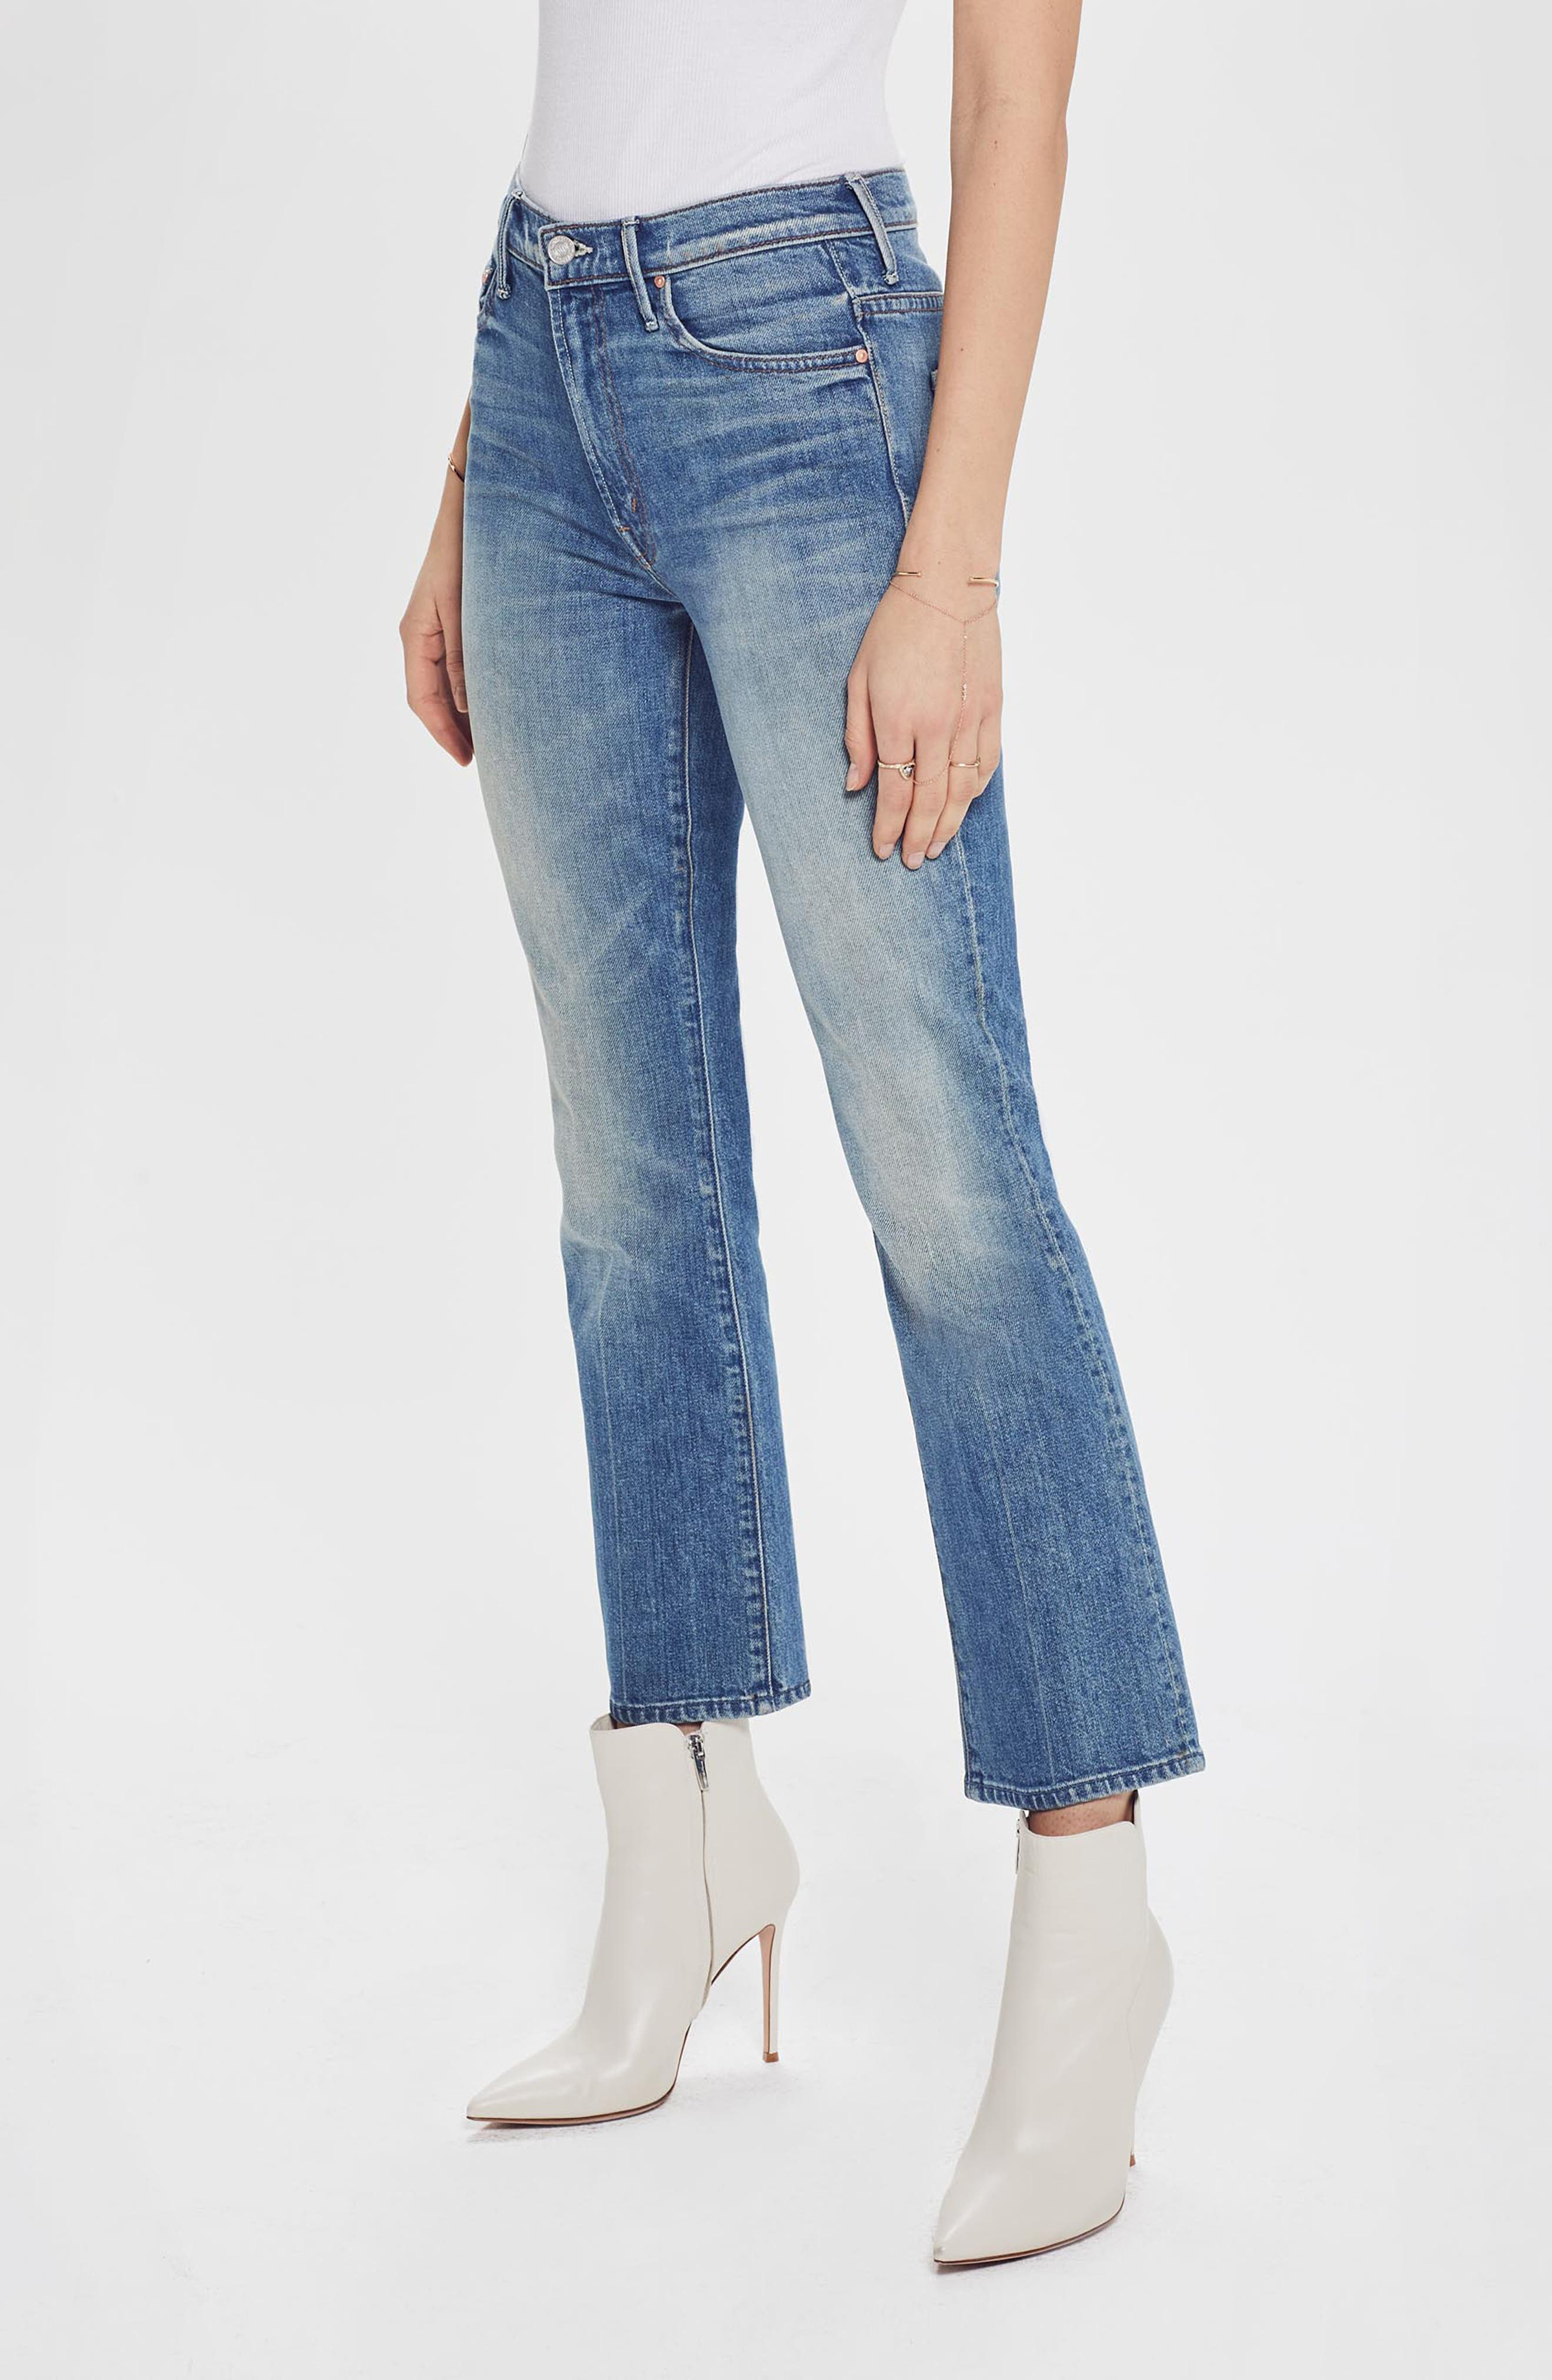 MOTHER, The Insider Ankle Bootcut Jeans, Alternate thumbnail 7, color, 421